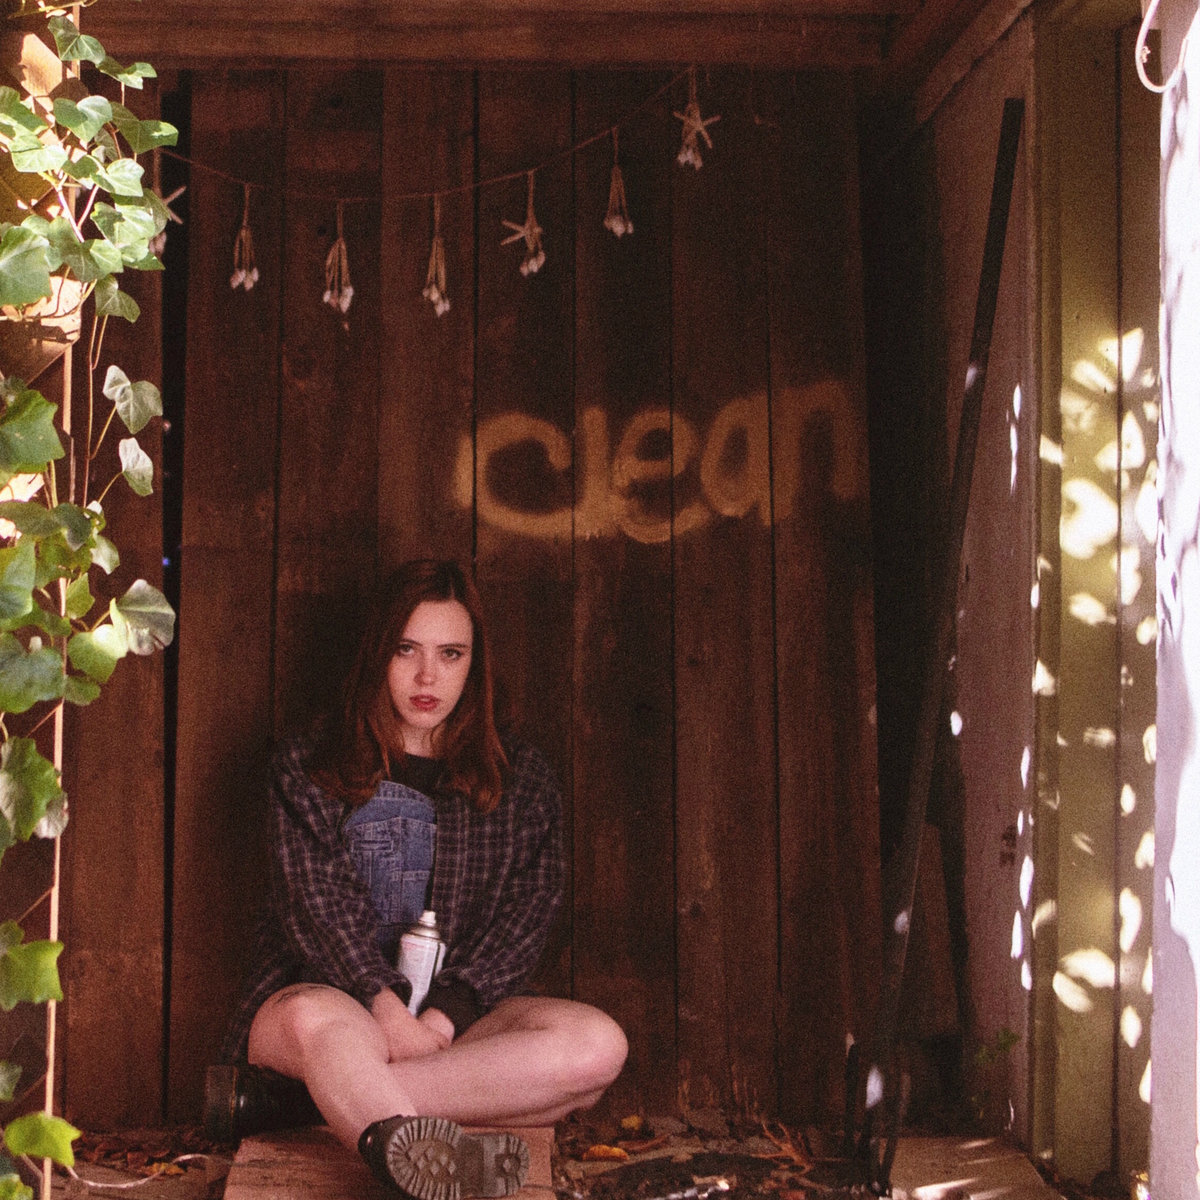 20. Soccer Mommy - Clean